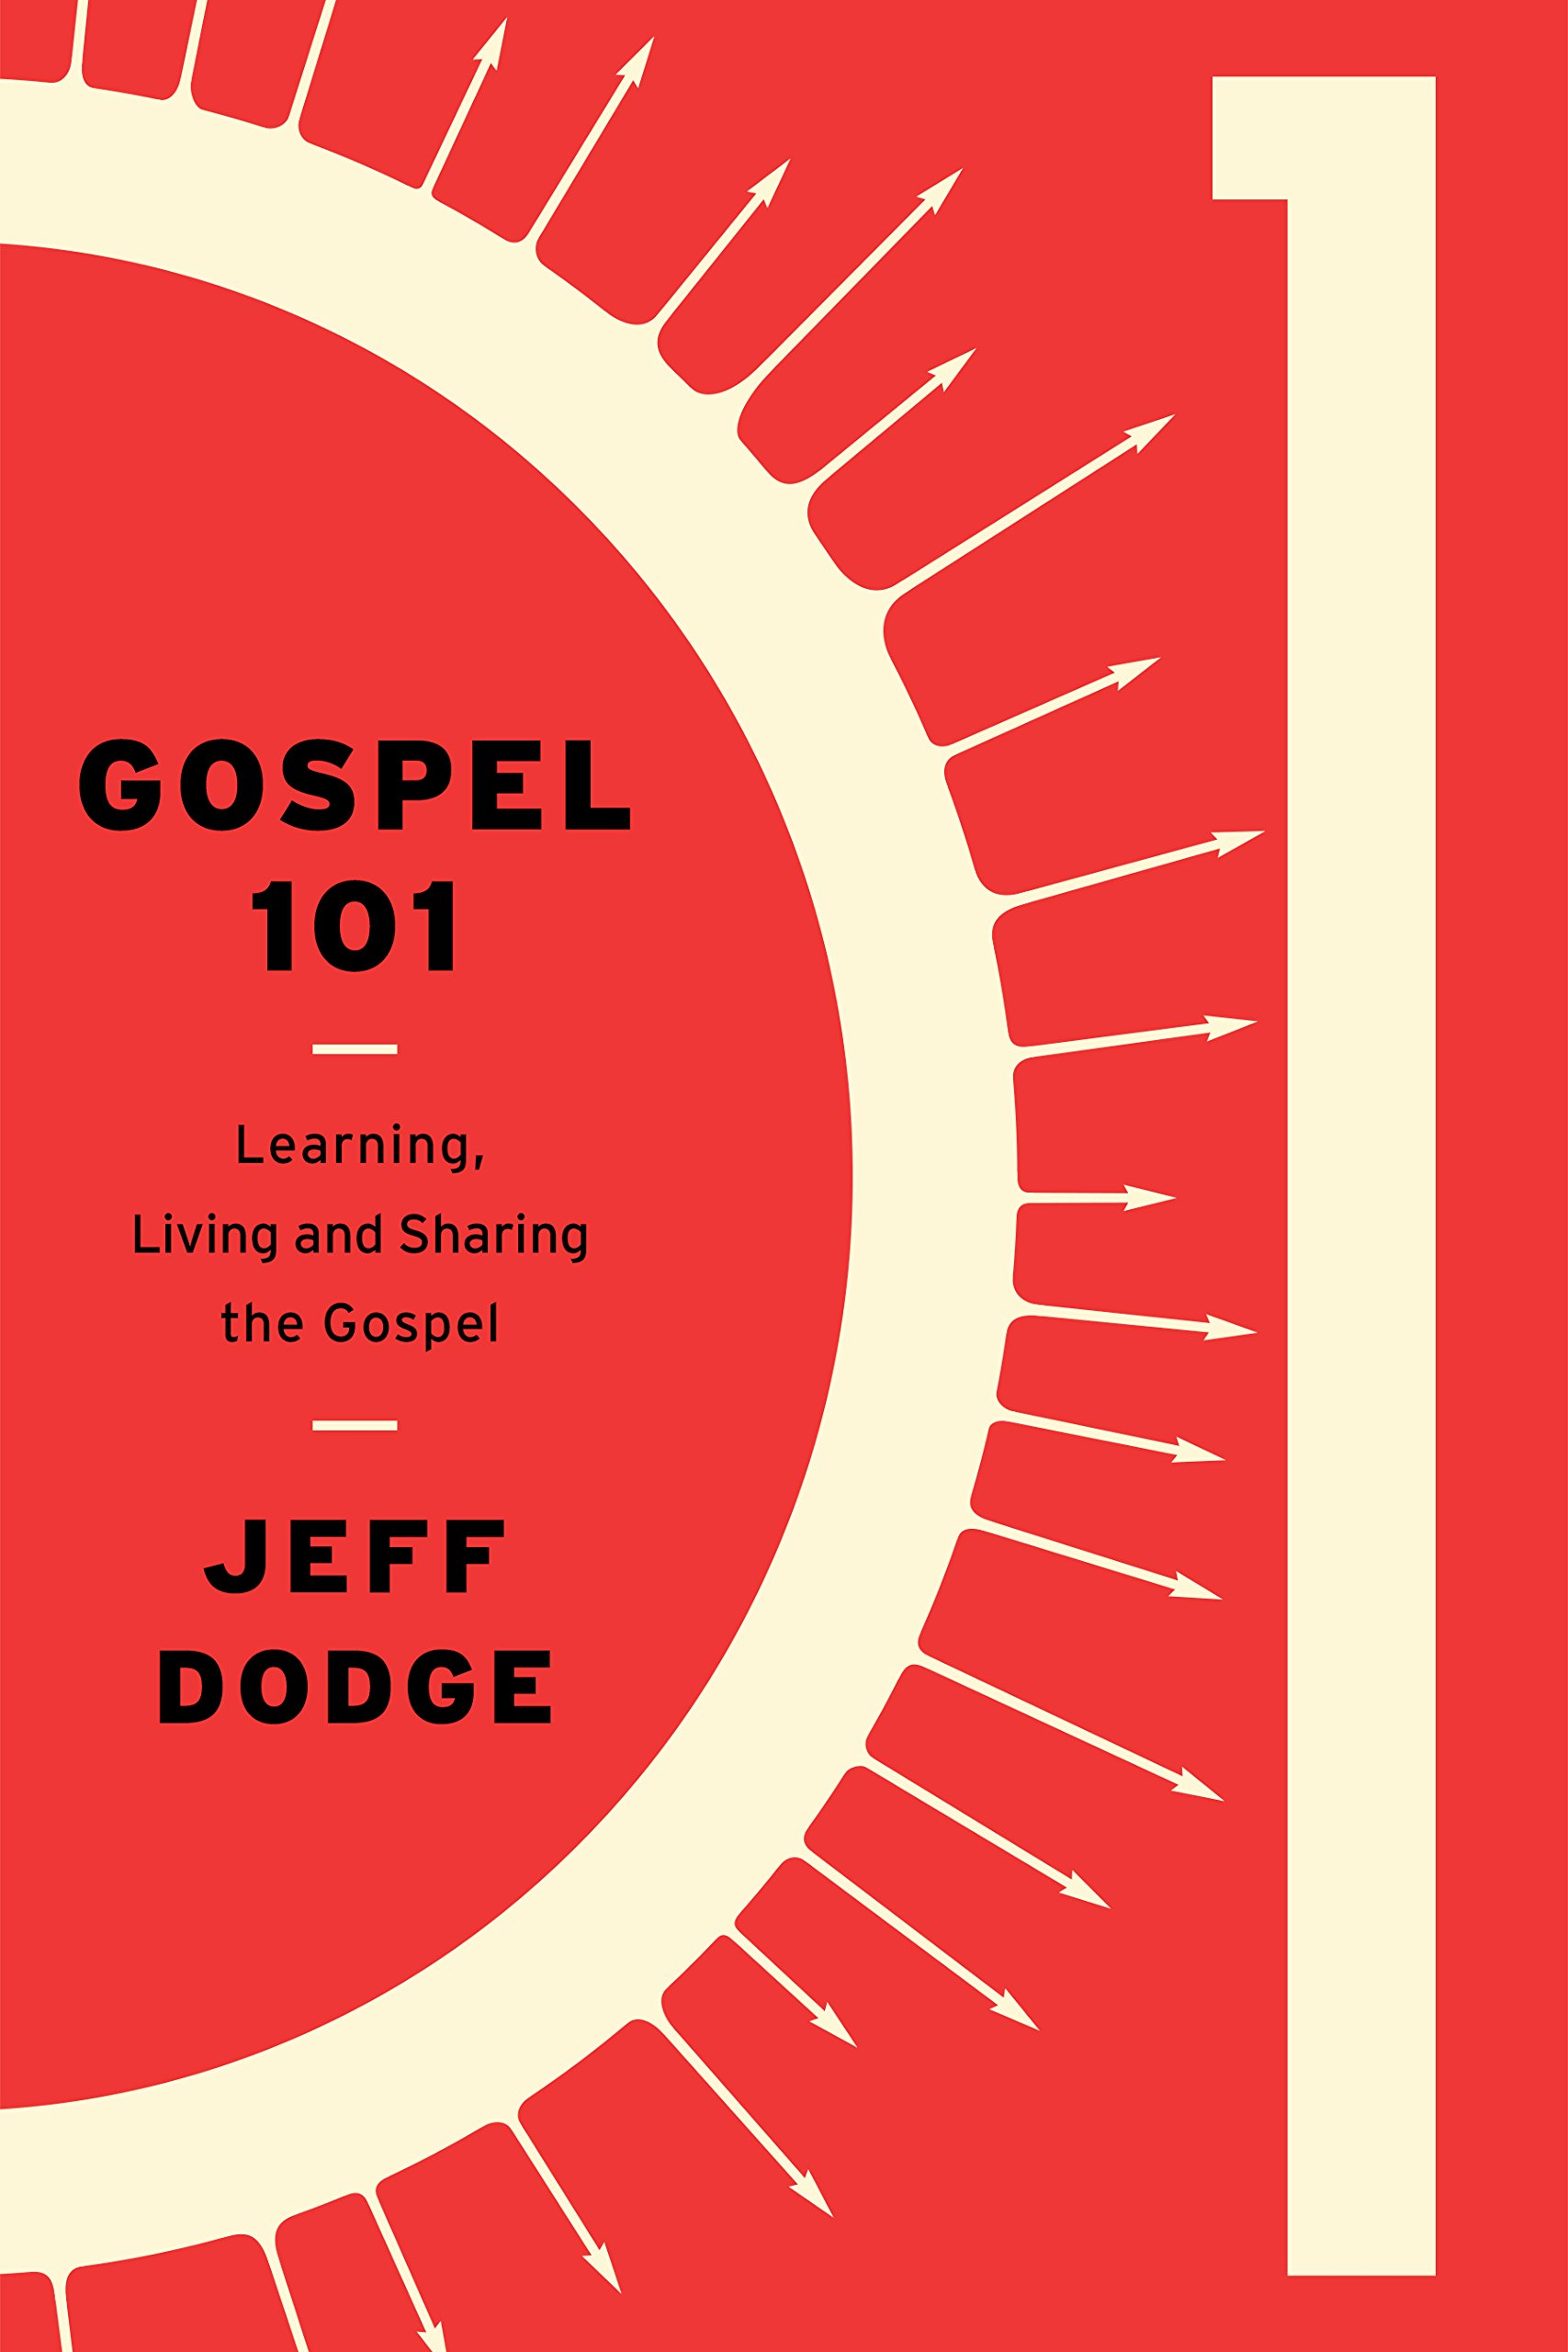 Gospel 101: Learning, Living, and Sharing the Gospel: Jeff Dodge:  9781948130103: Amazon.com: Books